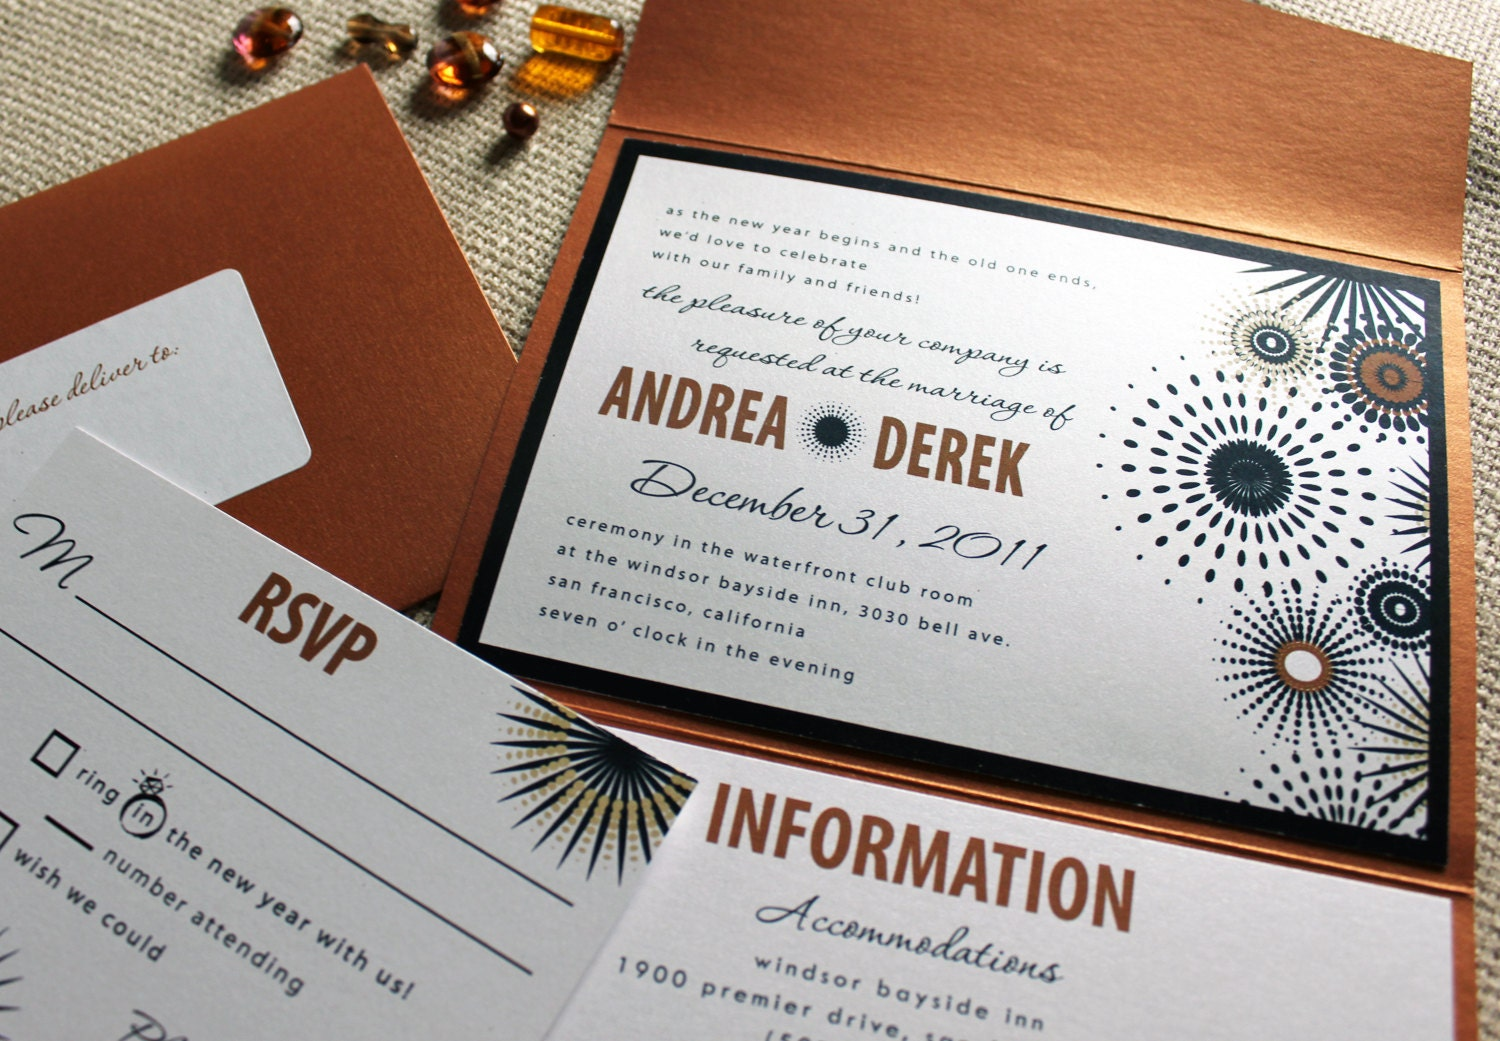 New Years Eve Wedding Invitation: New Years Eve Wedding Invitations Wording